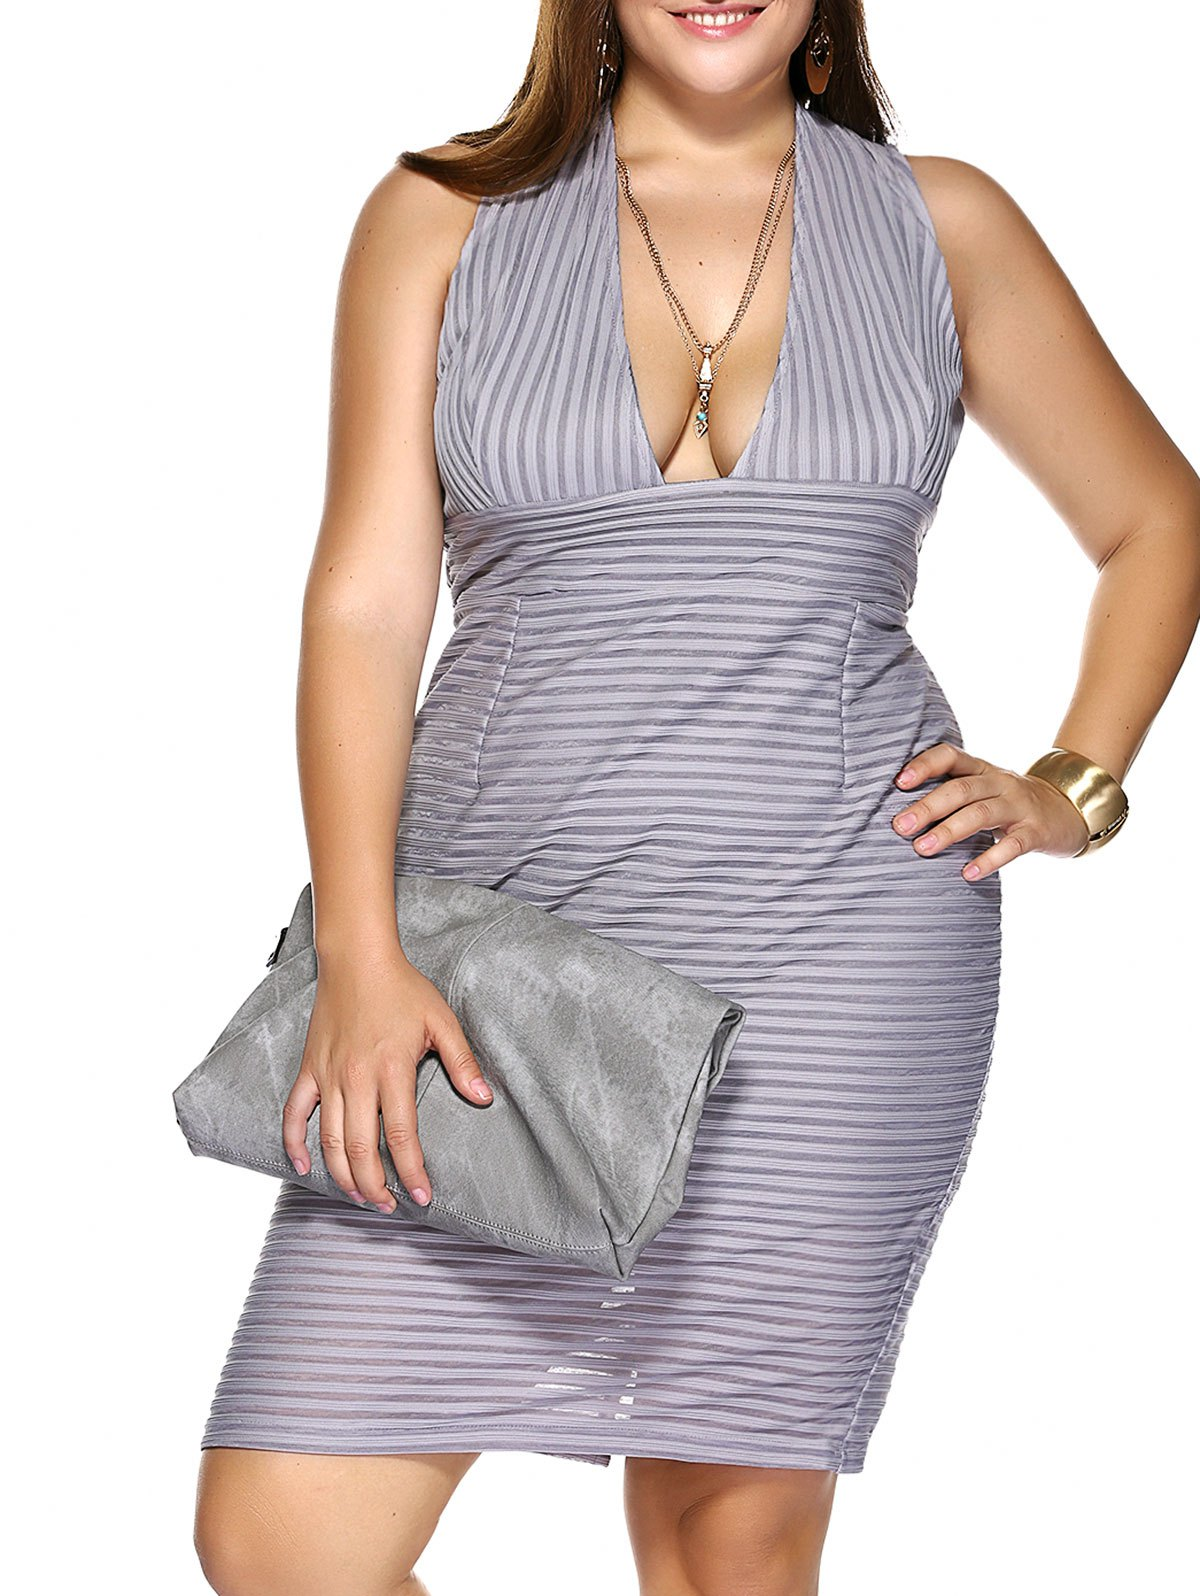 Plus Size Plunging Neck Striped Empire Waist Formal Hot Dress - GRAY 5XL